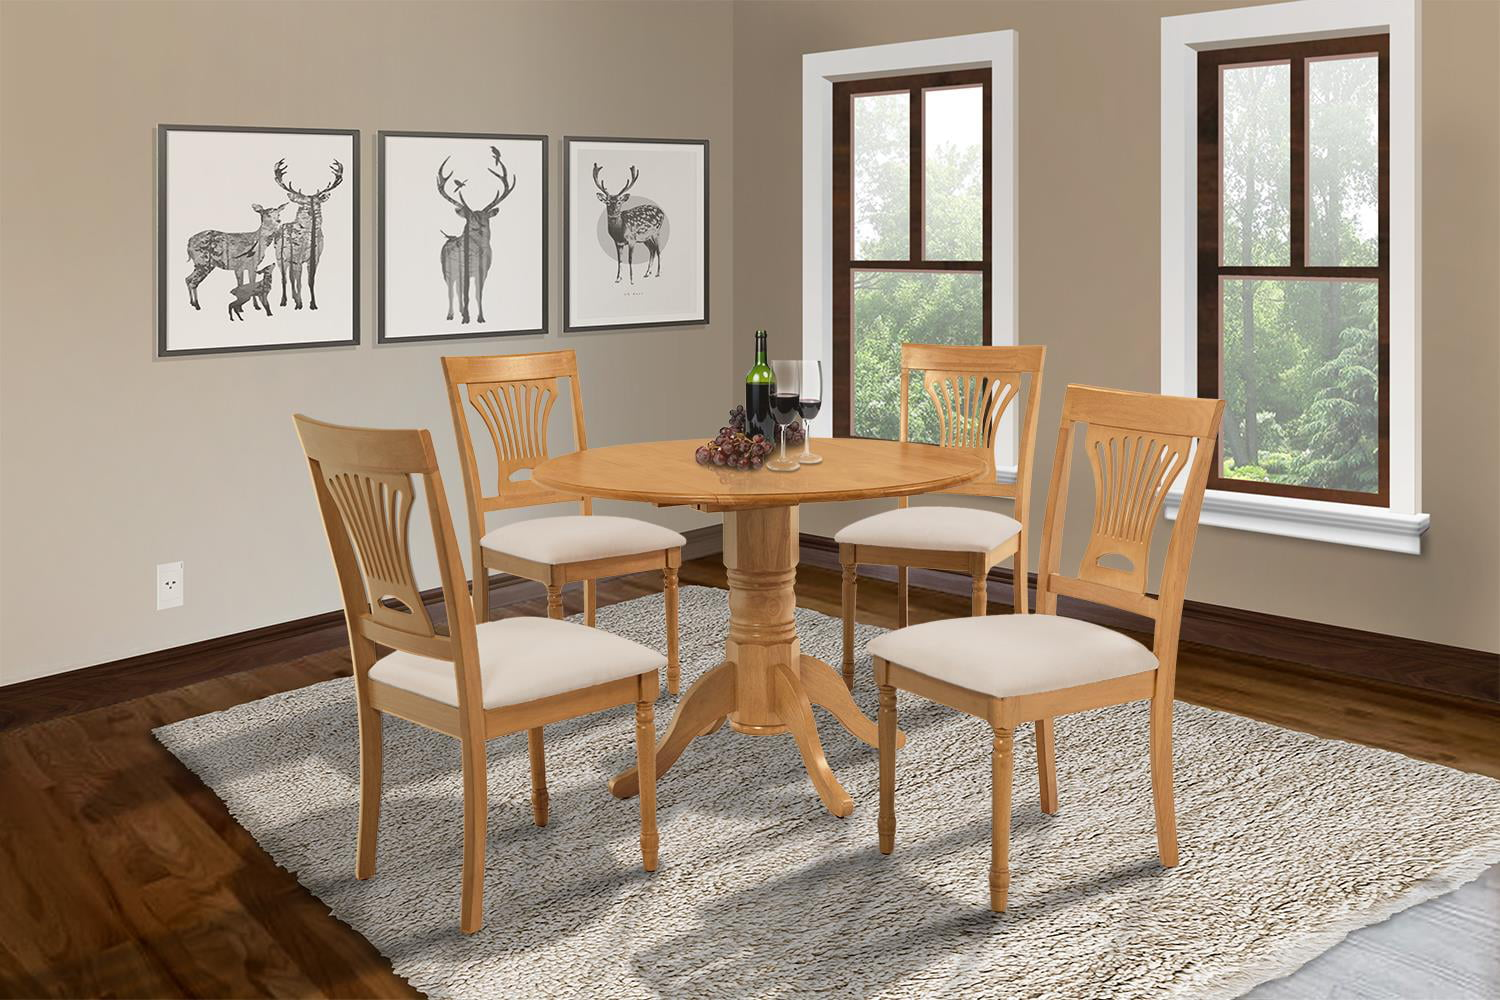 Burlington 5 Piece Small Kitchen Table Set Kitchen Table And 4 Dining Chairs Finish Oak Shape Round Walmart Com Walmart Com